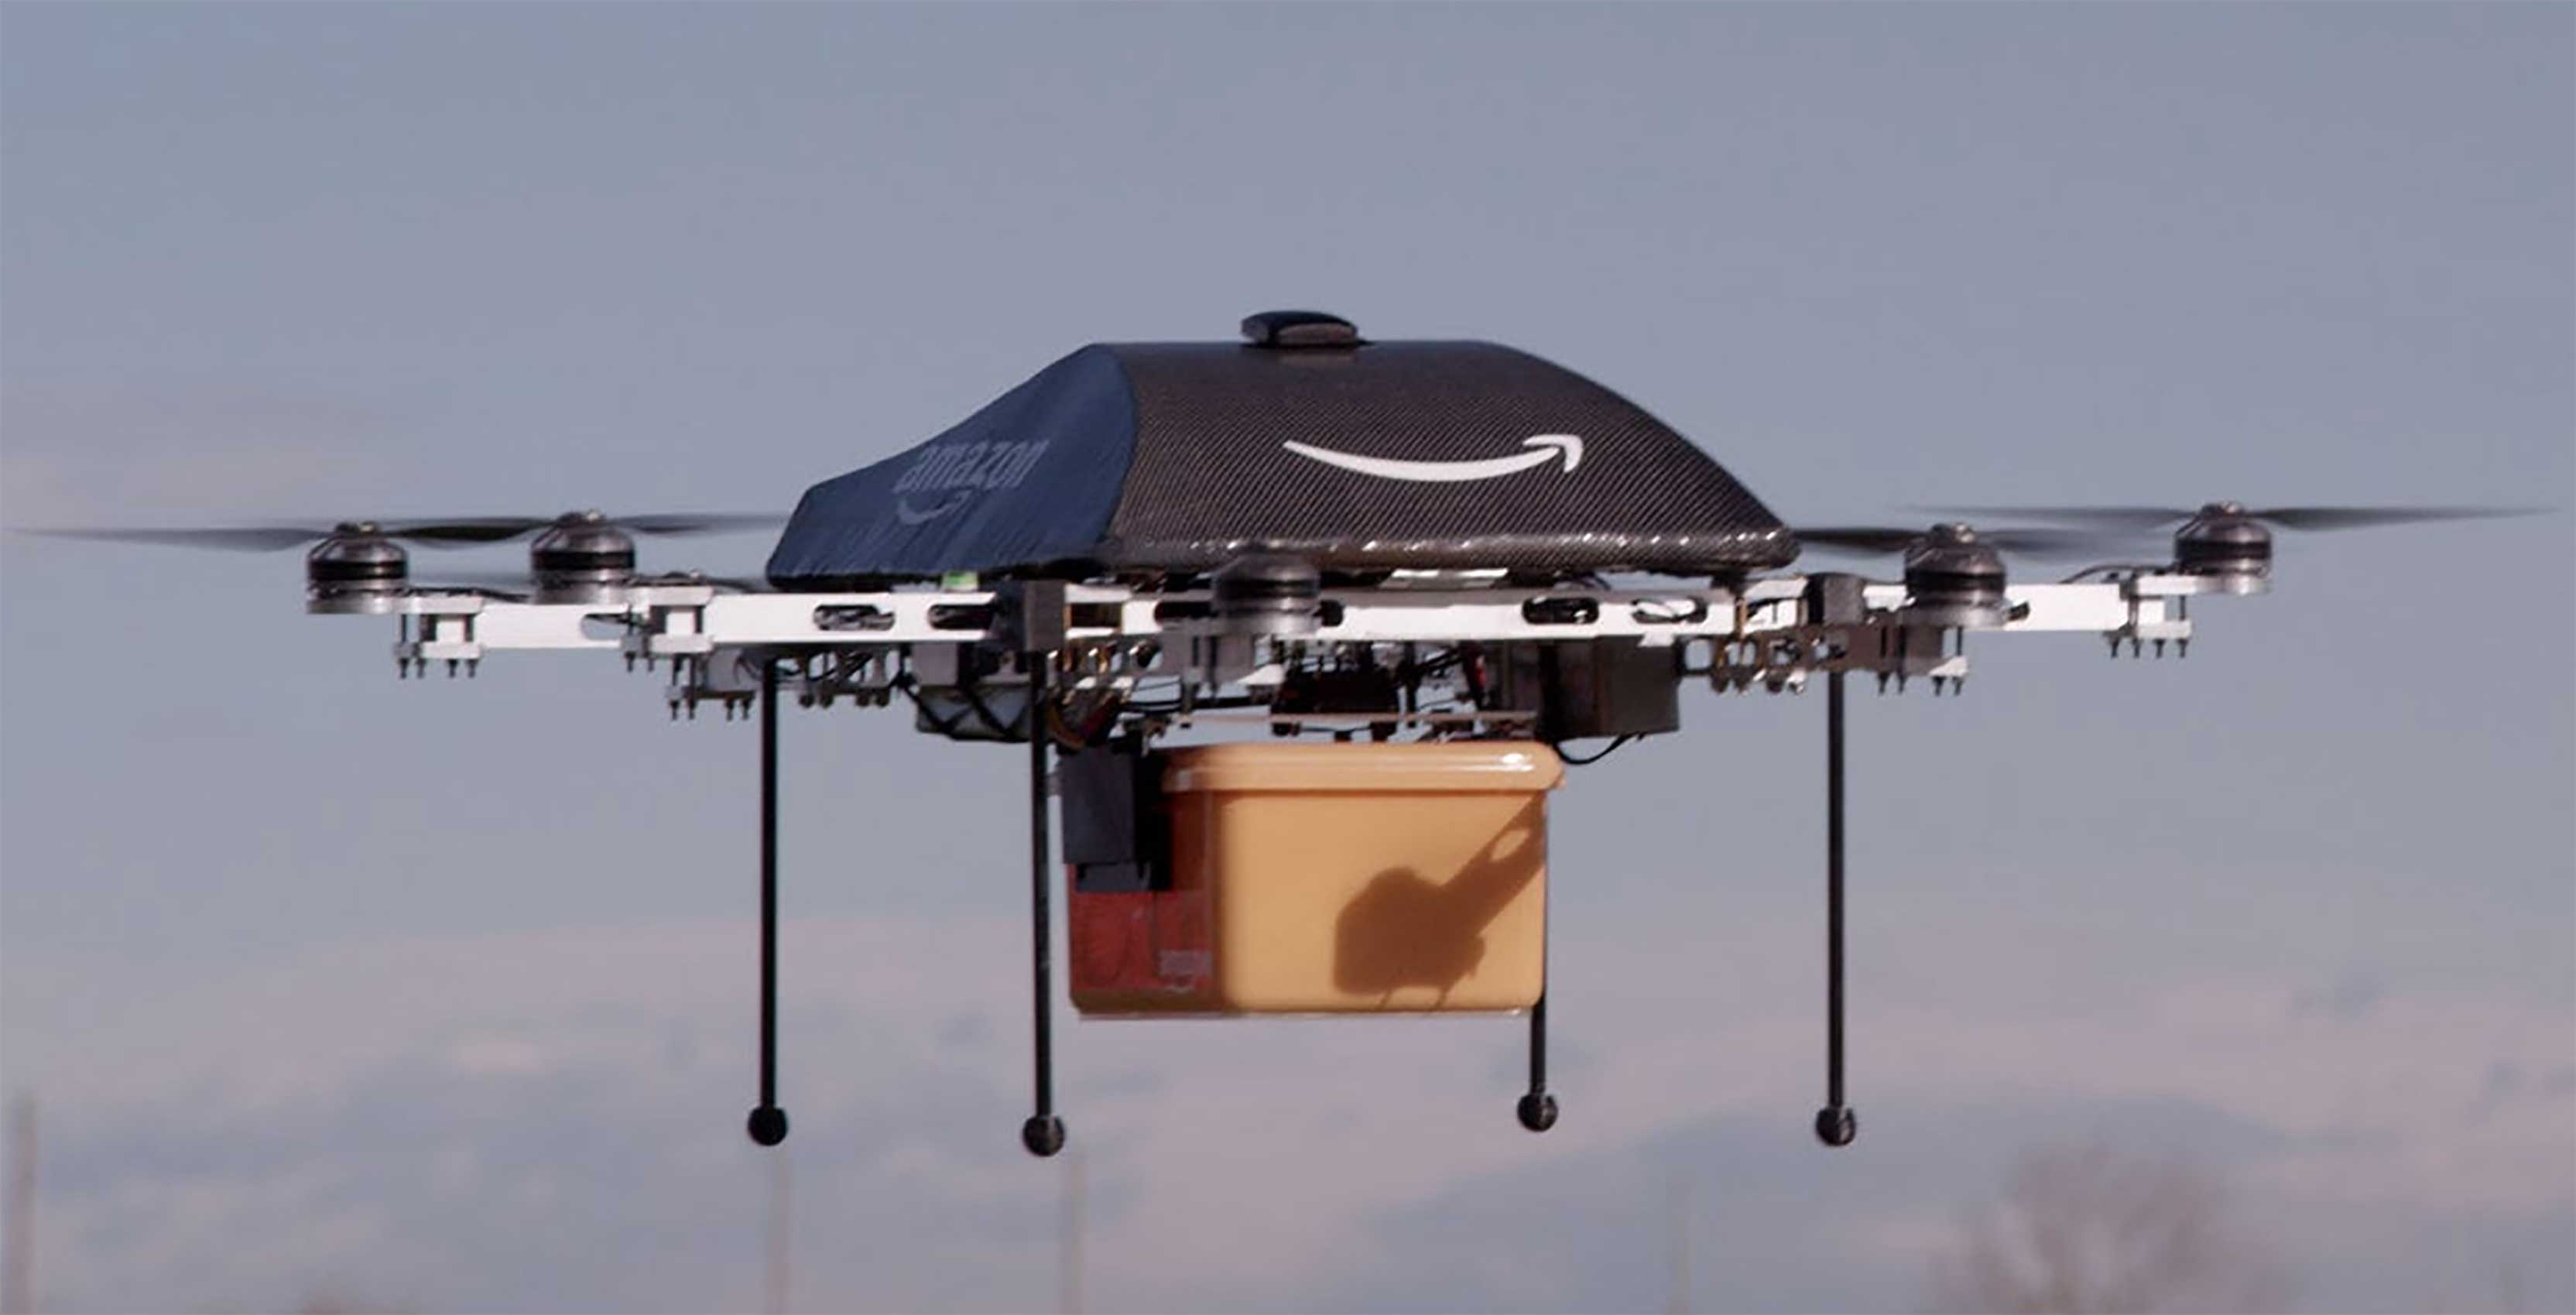 Amazon Drones deliver package while airborne